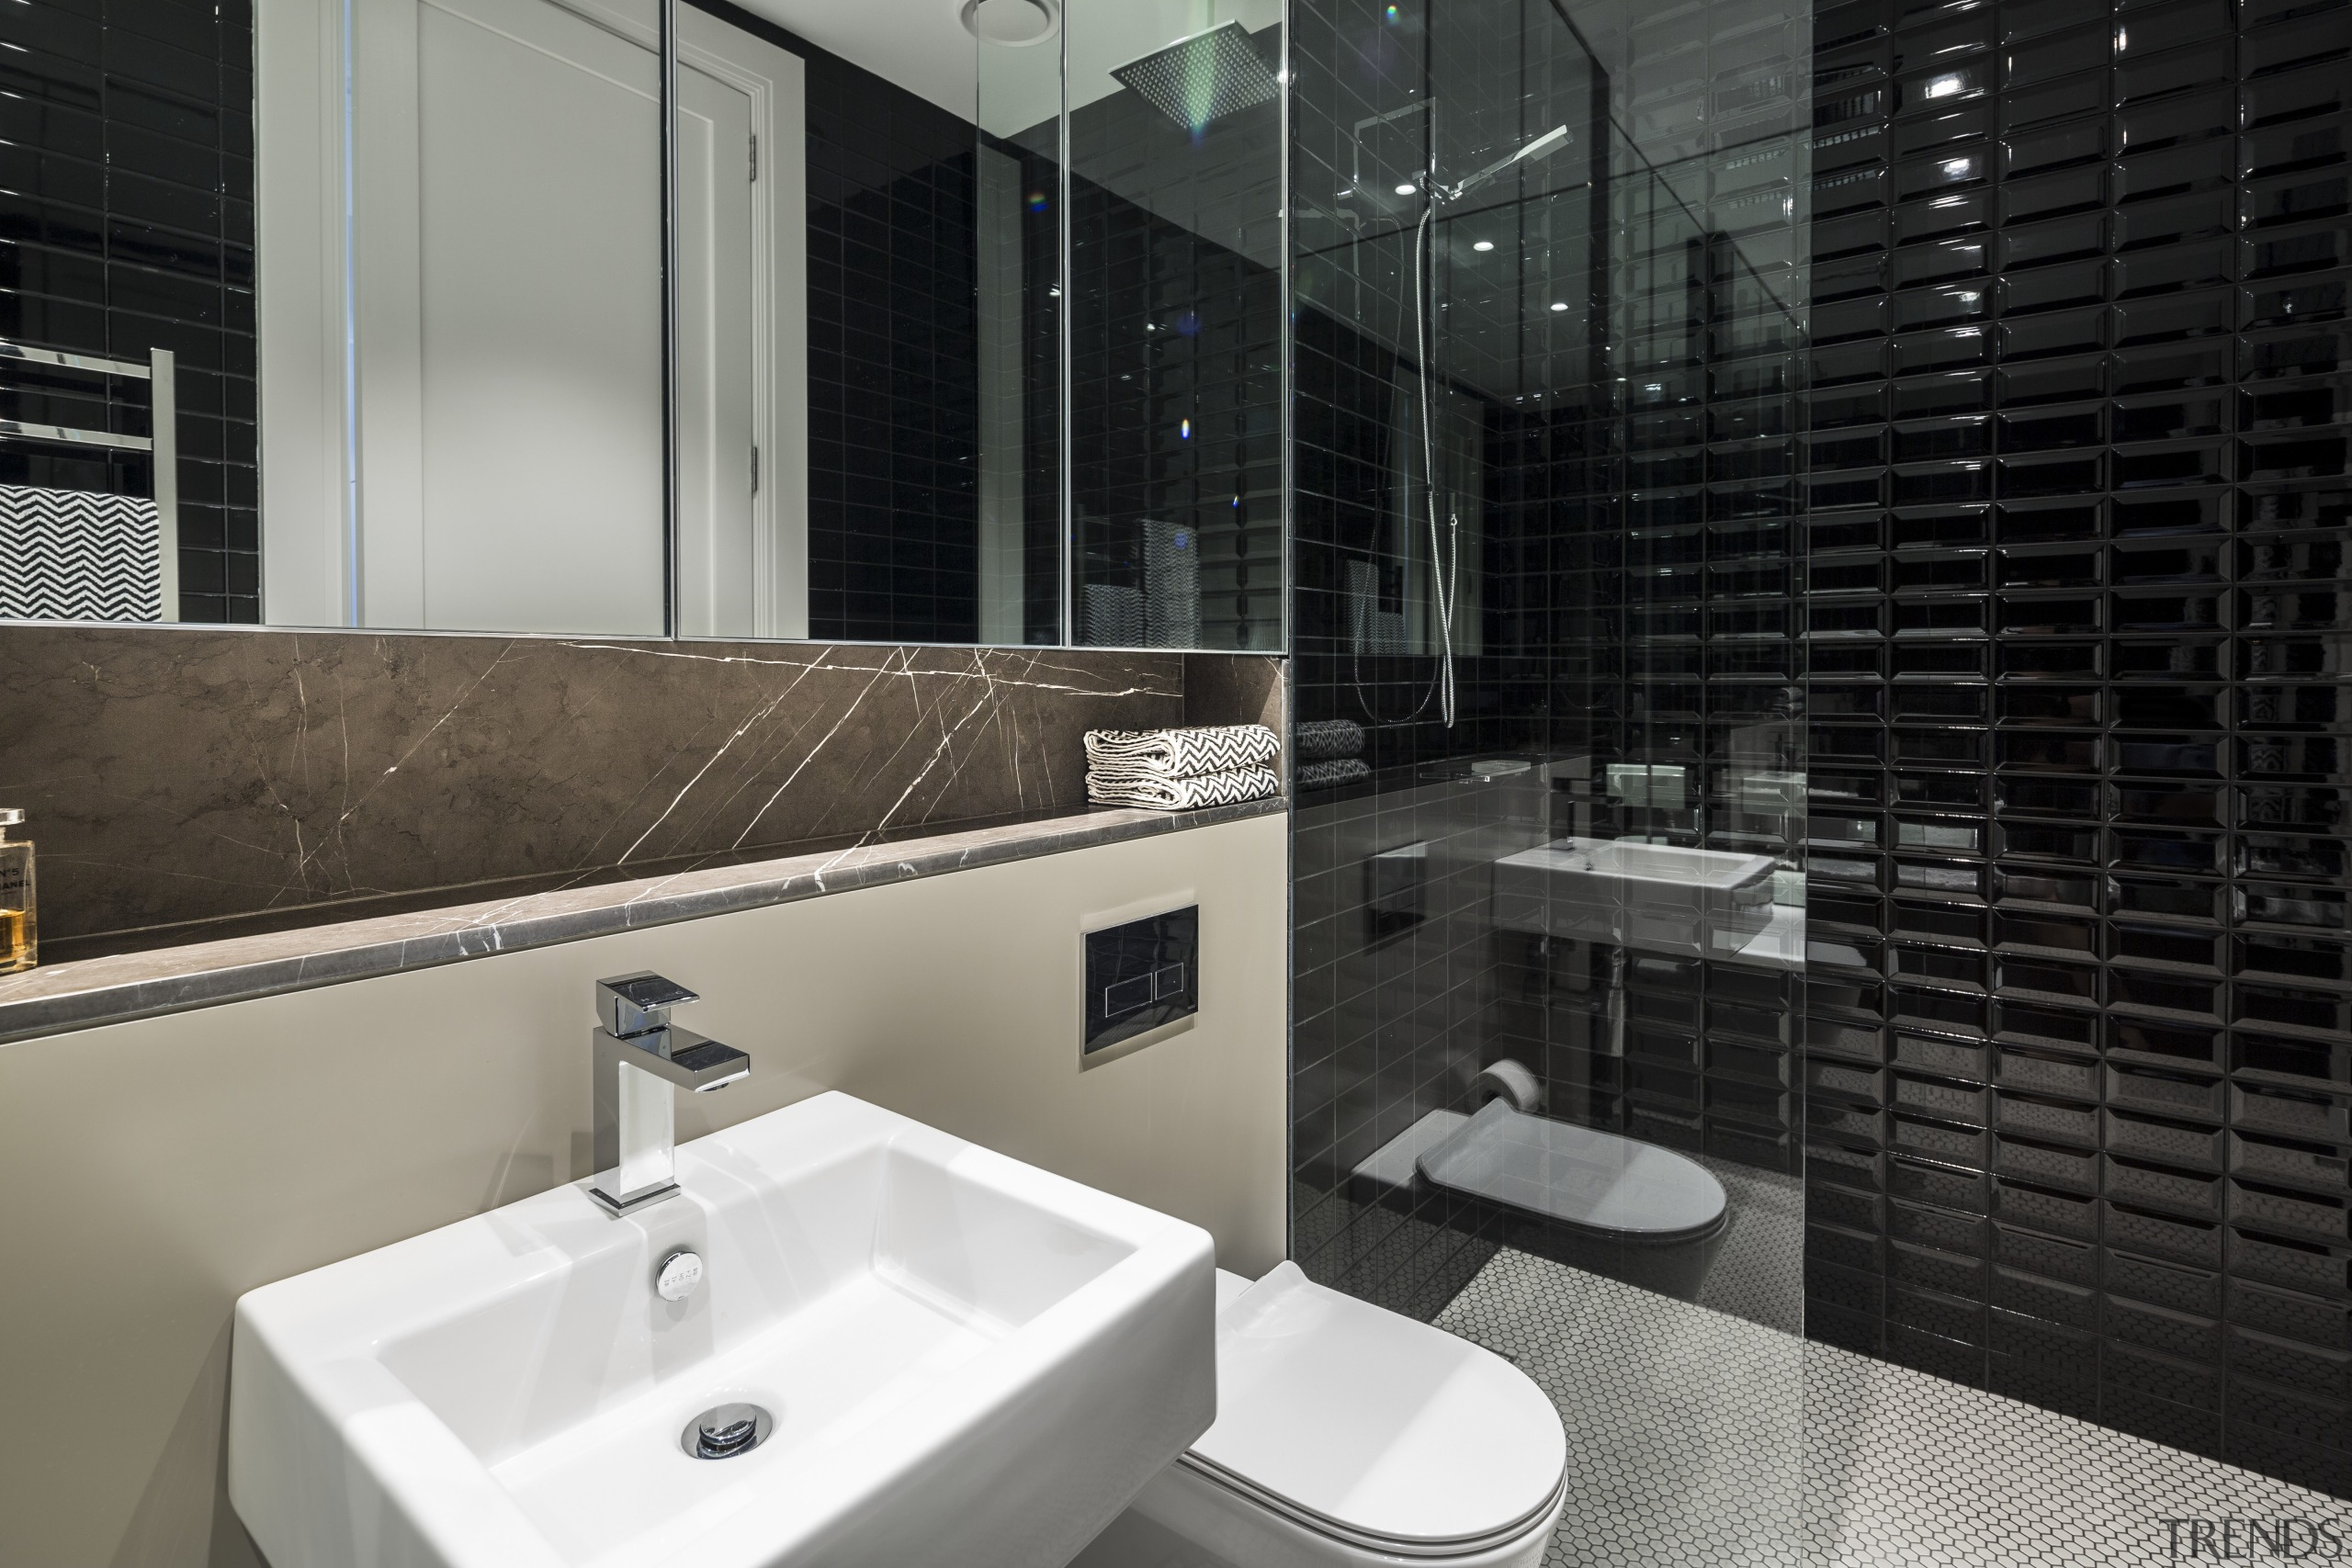 This renovated city residence now has three and architecture, bathroom, interior design, room, black, gray